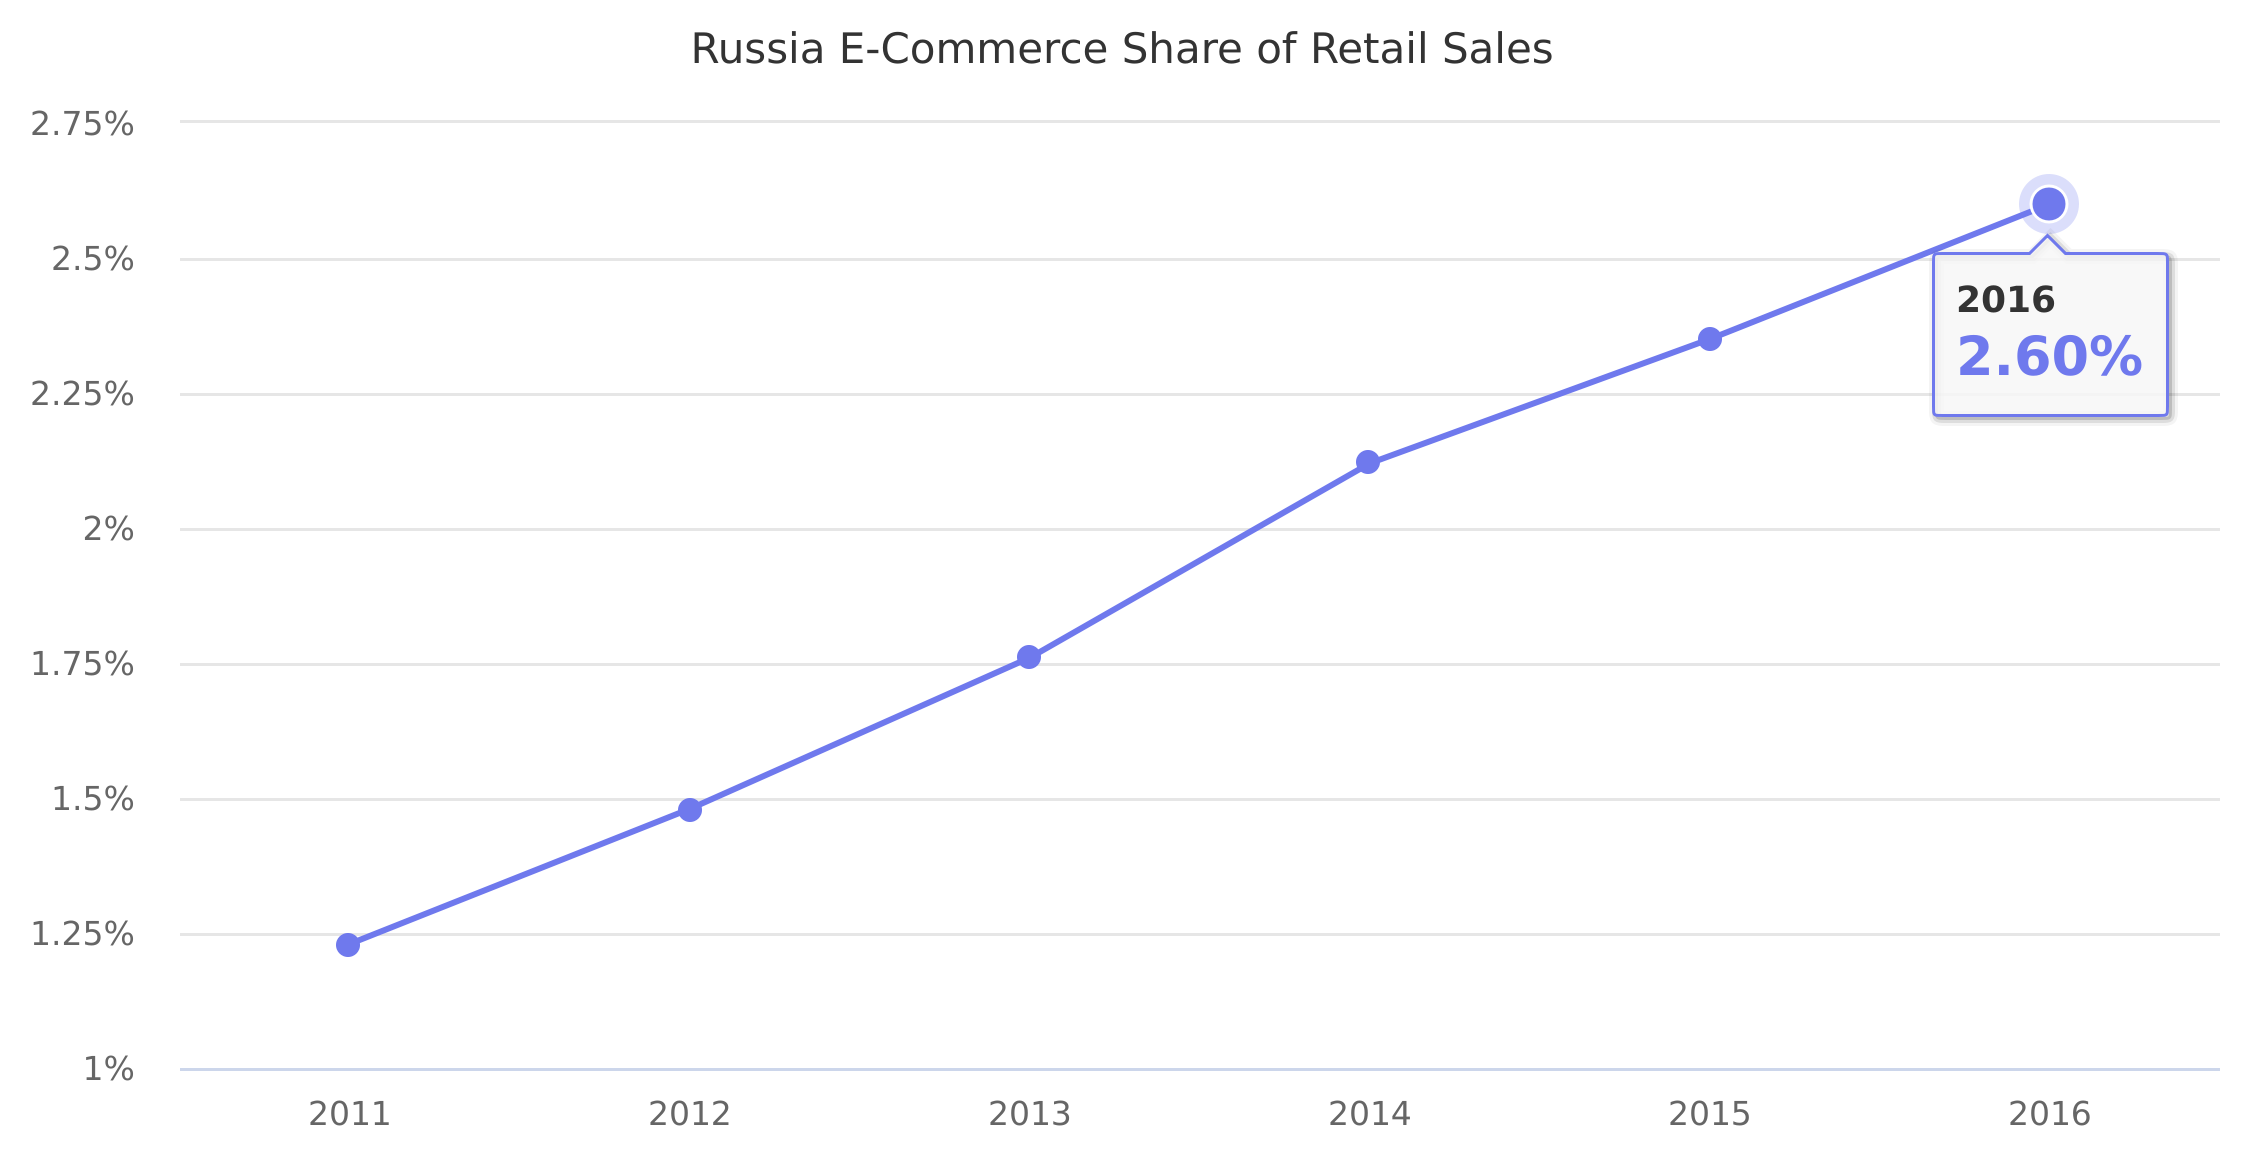 Russia E-Commerce Share of Retail Sales